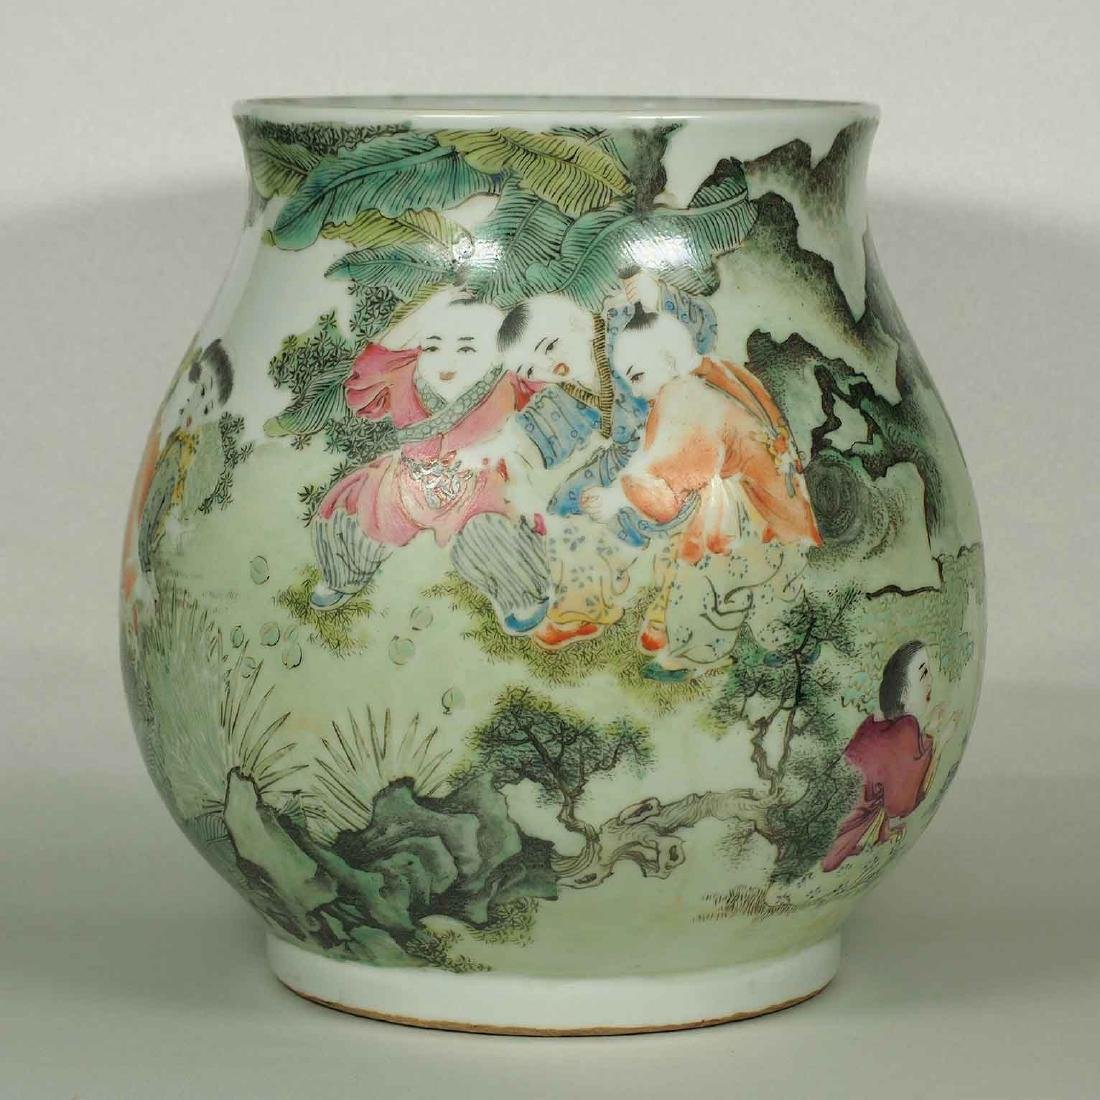 Jar with Kids Playing Design, Qianlong Mark, Republic